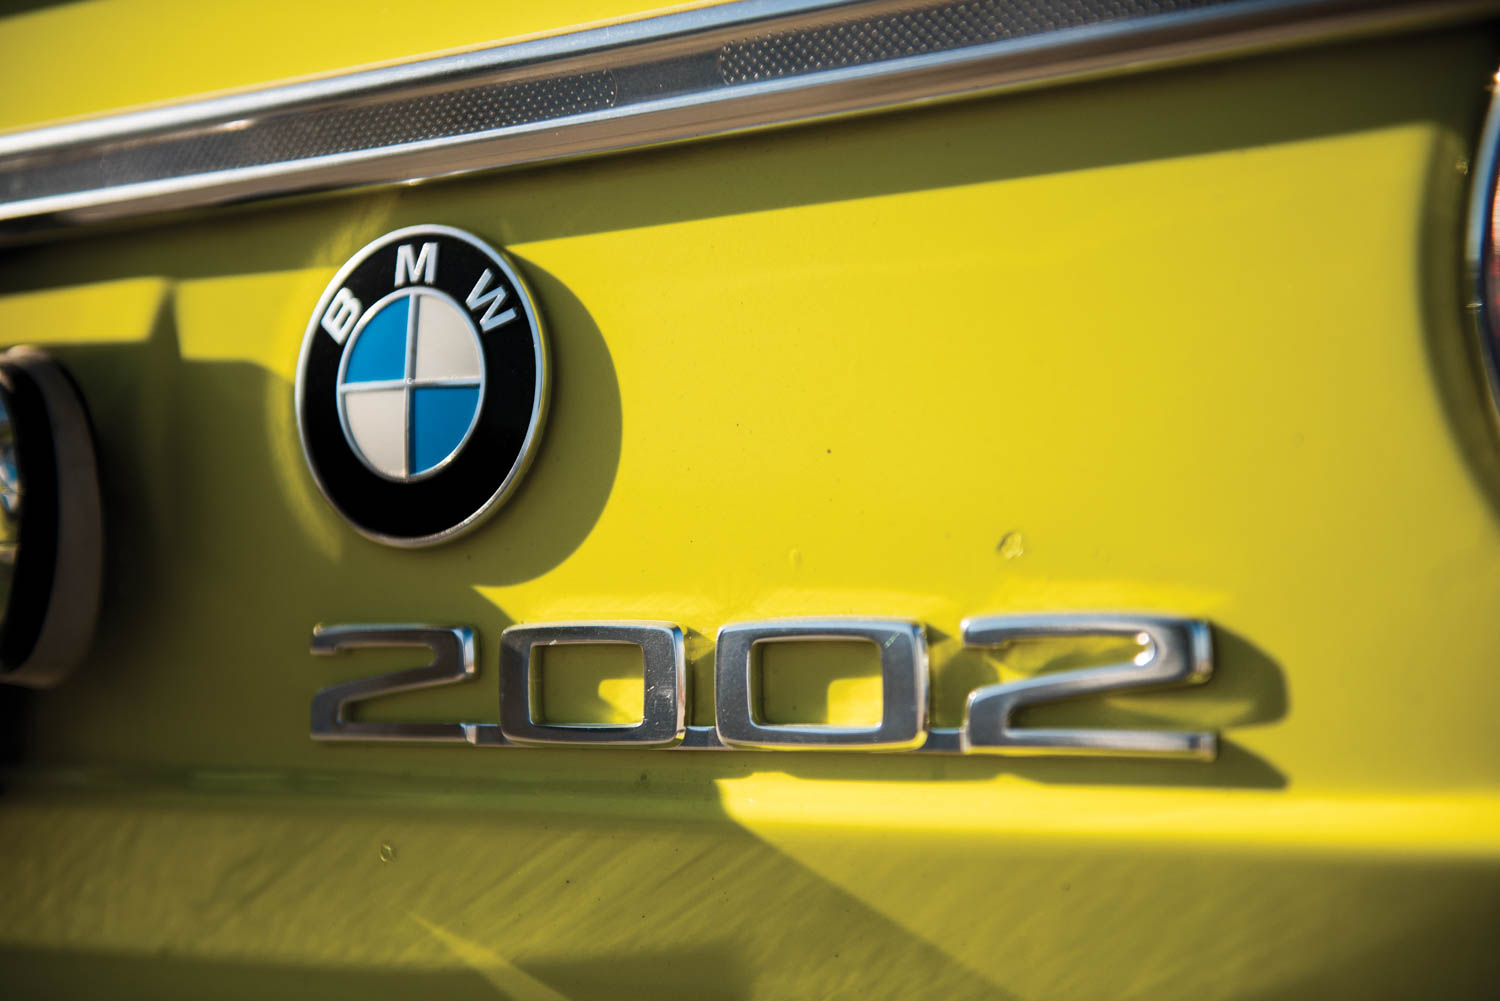 1972 BMW 2002 rear badge